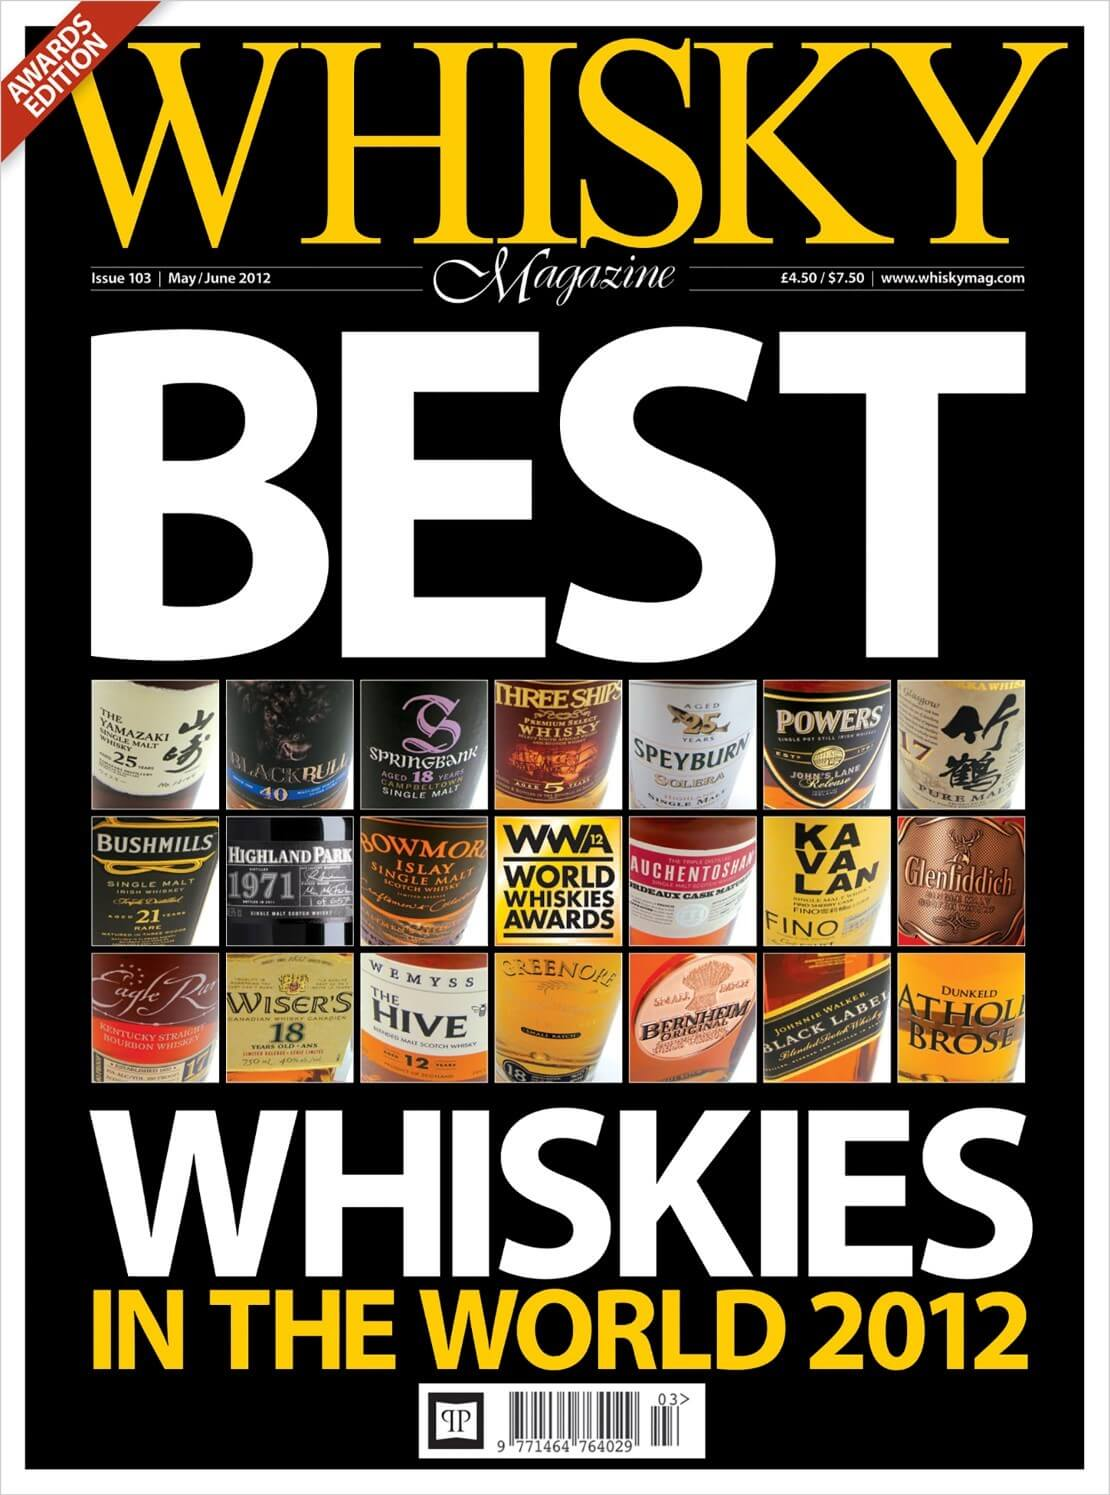 World Whiskies Awards winners Daftmill Cambus Distillery Oak matters The Angels' Share Drinker's guide to Chicago